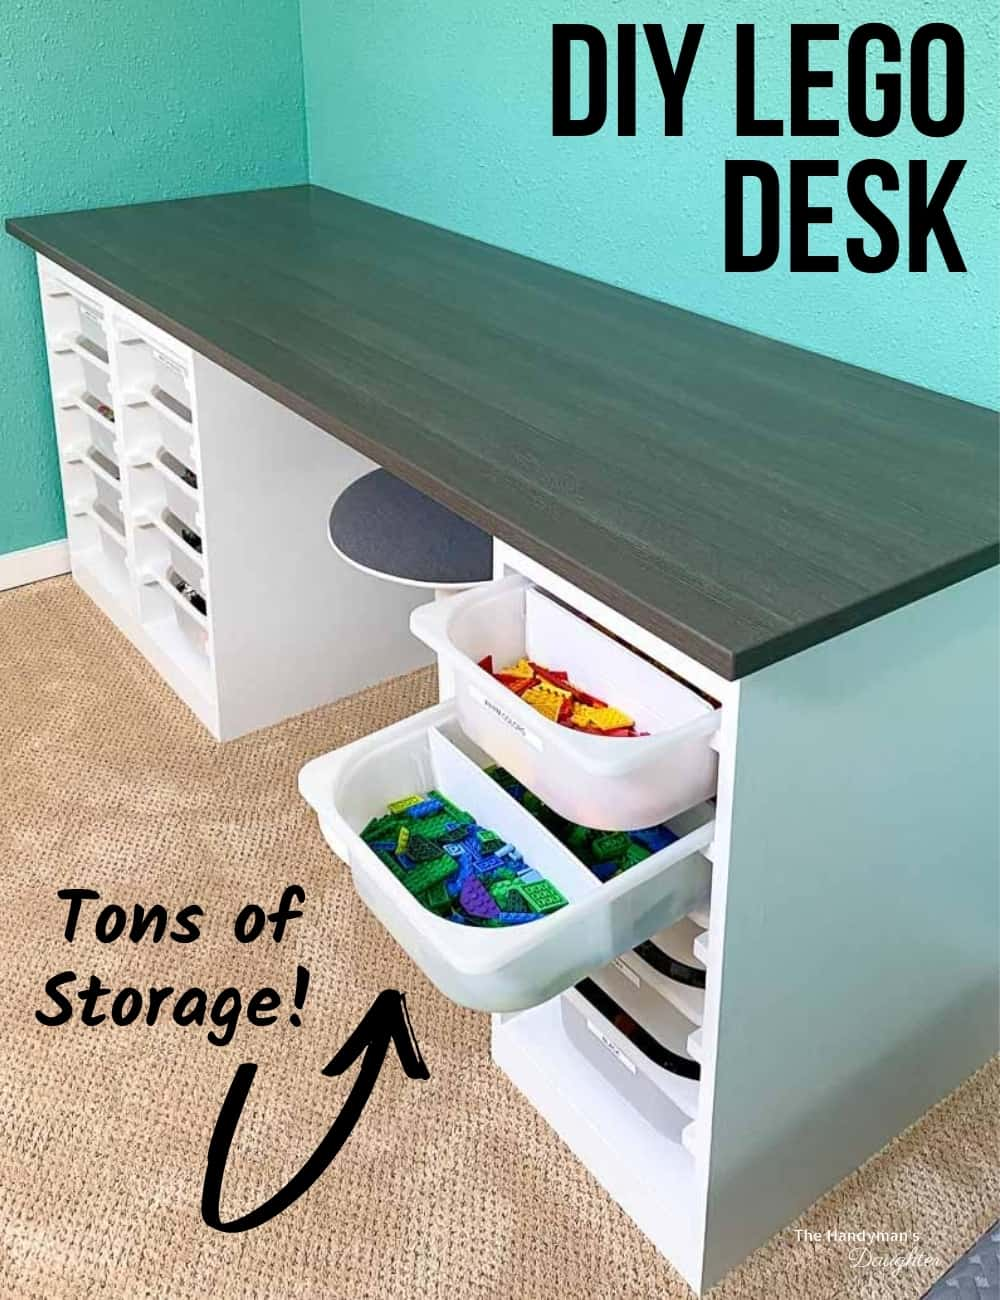 DIY Lego desk with tons of storage